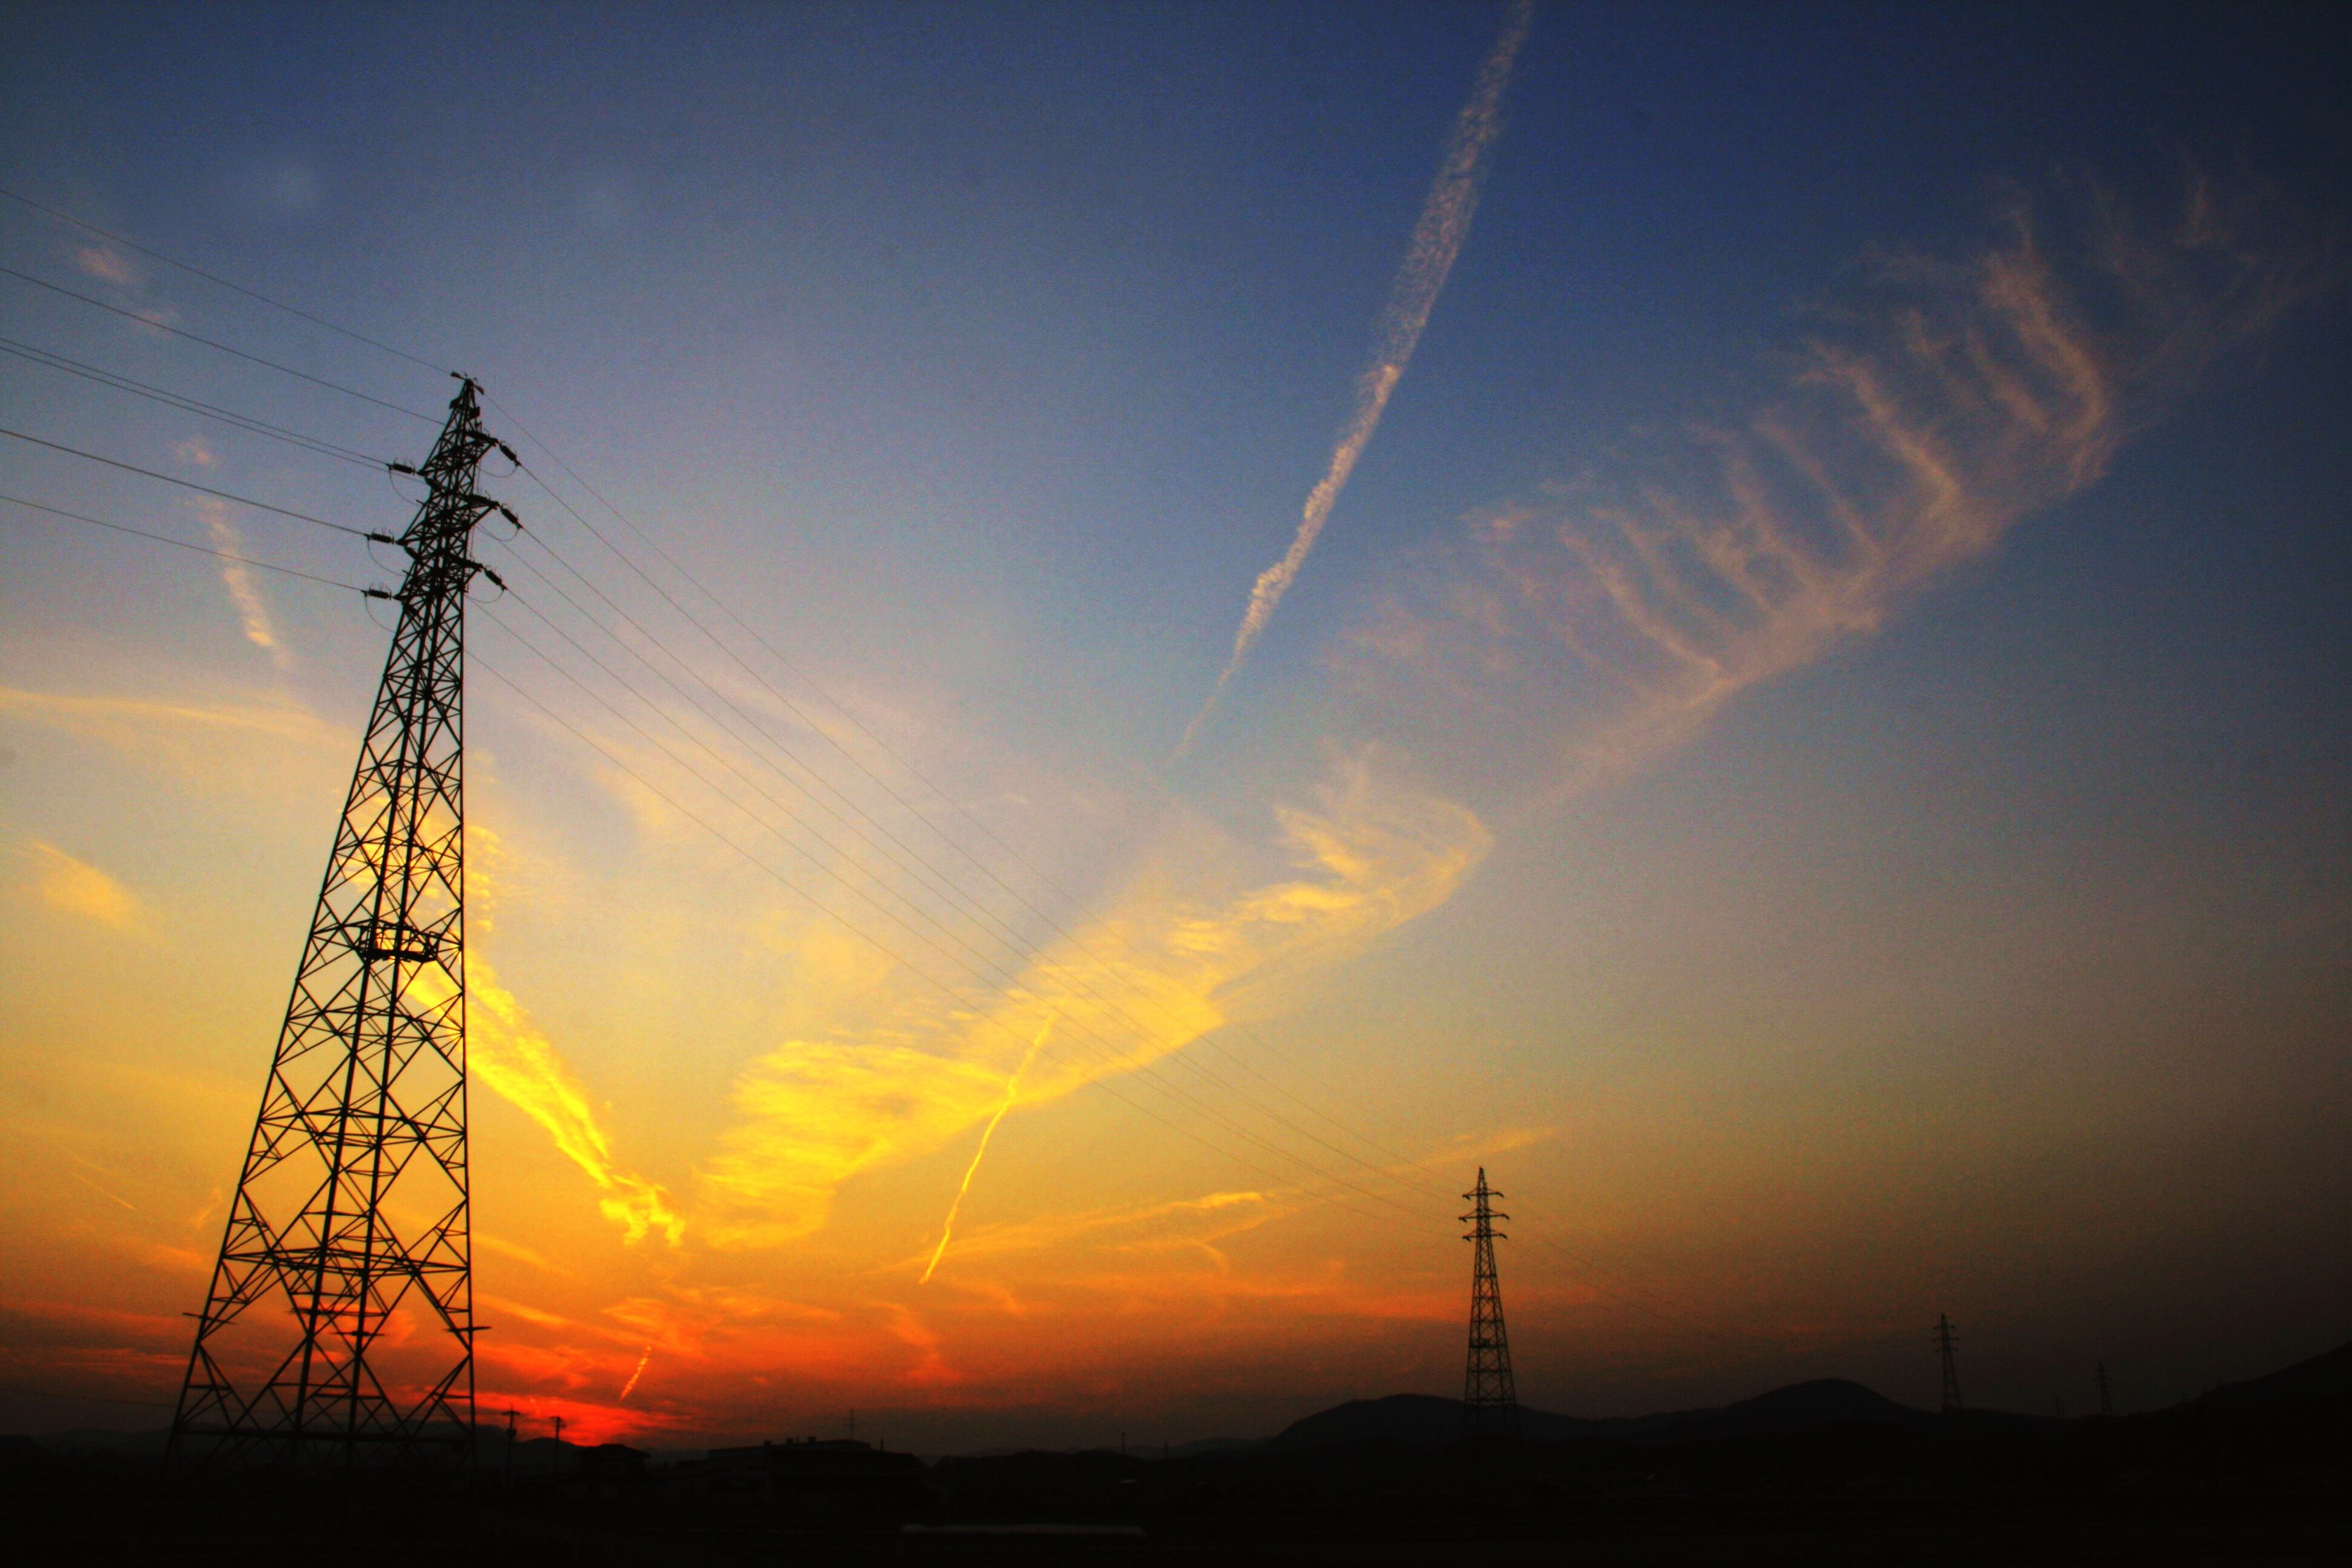 electricity pylon, sunset, power supply, fuel and power generation, power line, electricity, silhouette, technology, connection, low angle view, sky, orange color, cable, scenics, beauty in nature, tranquility, electricity tower, nature, tranquil scene, landscape